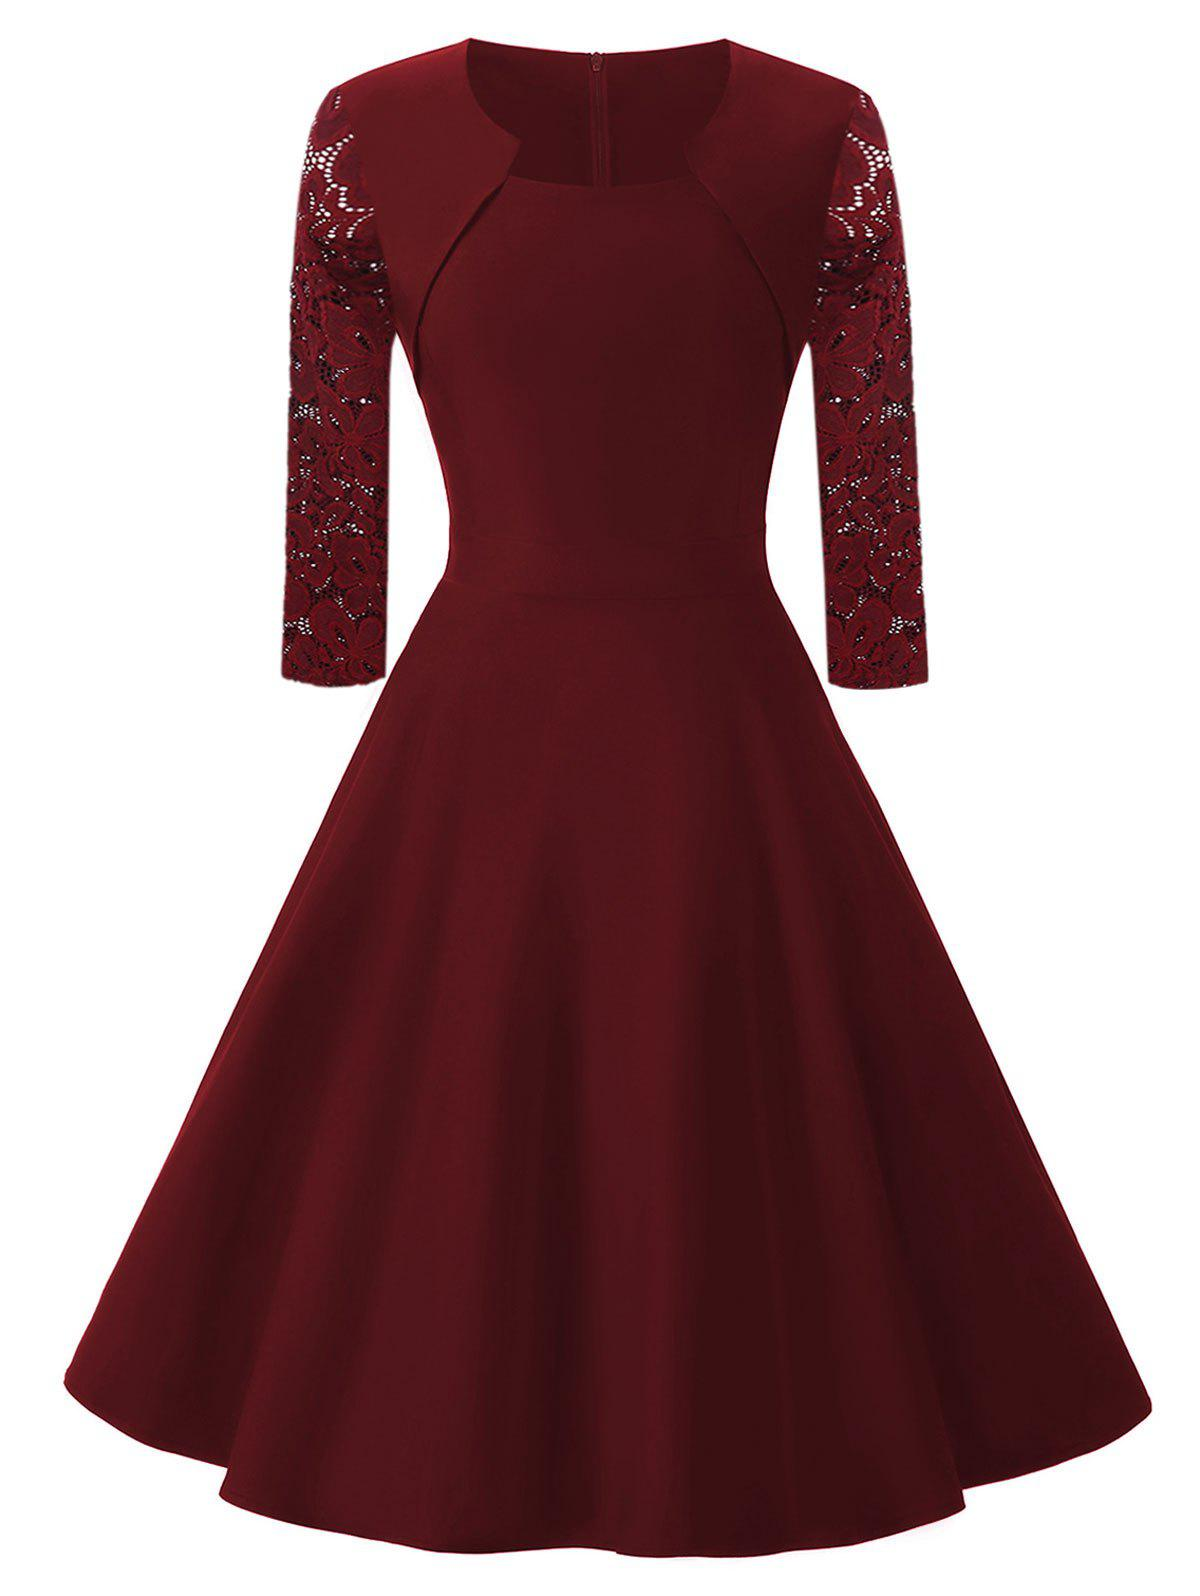 Lace  Sleeve Vintage Fit and Flare Dress lace splicing fit and flare dress